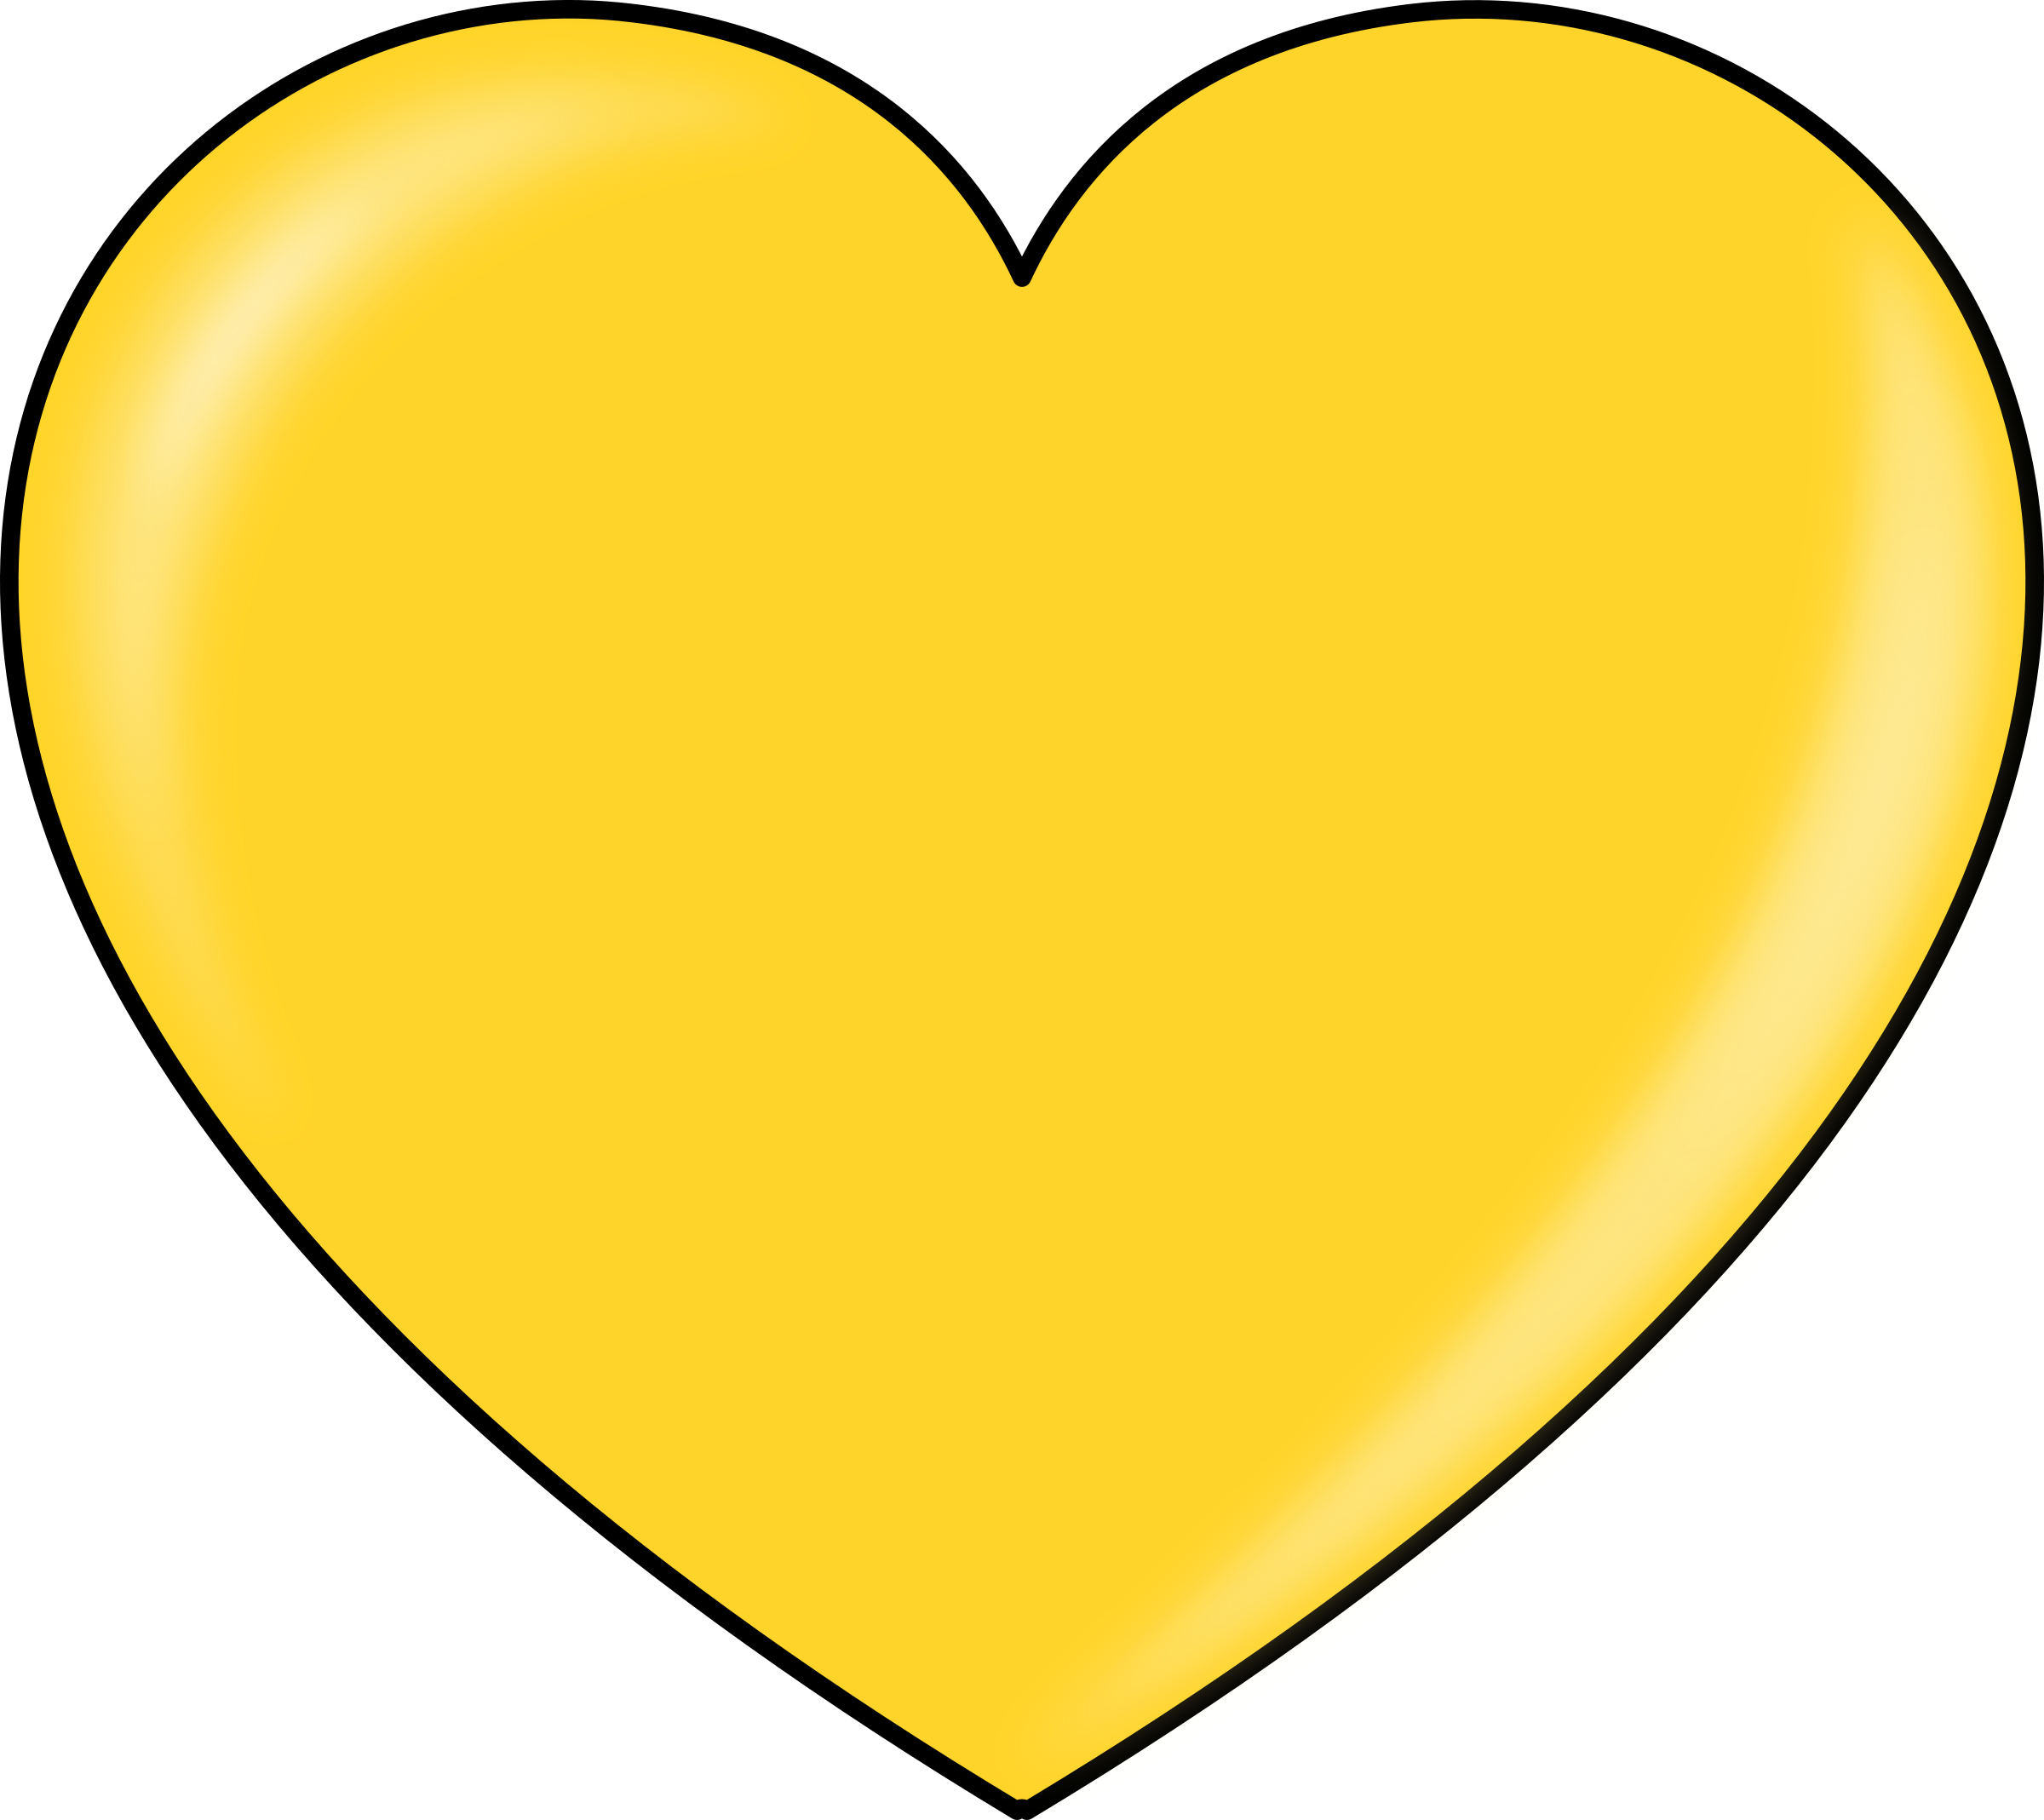 Gold heart outline clipart picture royalty free stock Clipart - gold heart picture royalty free stock